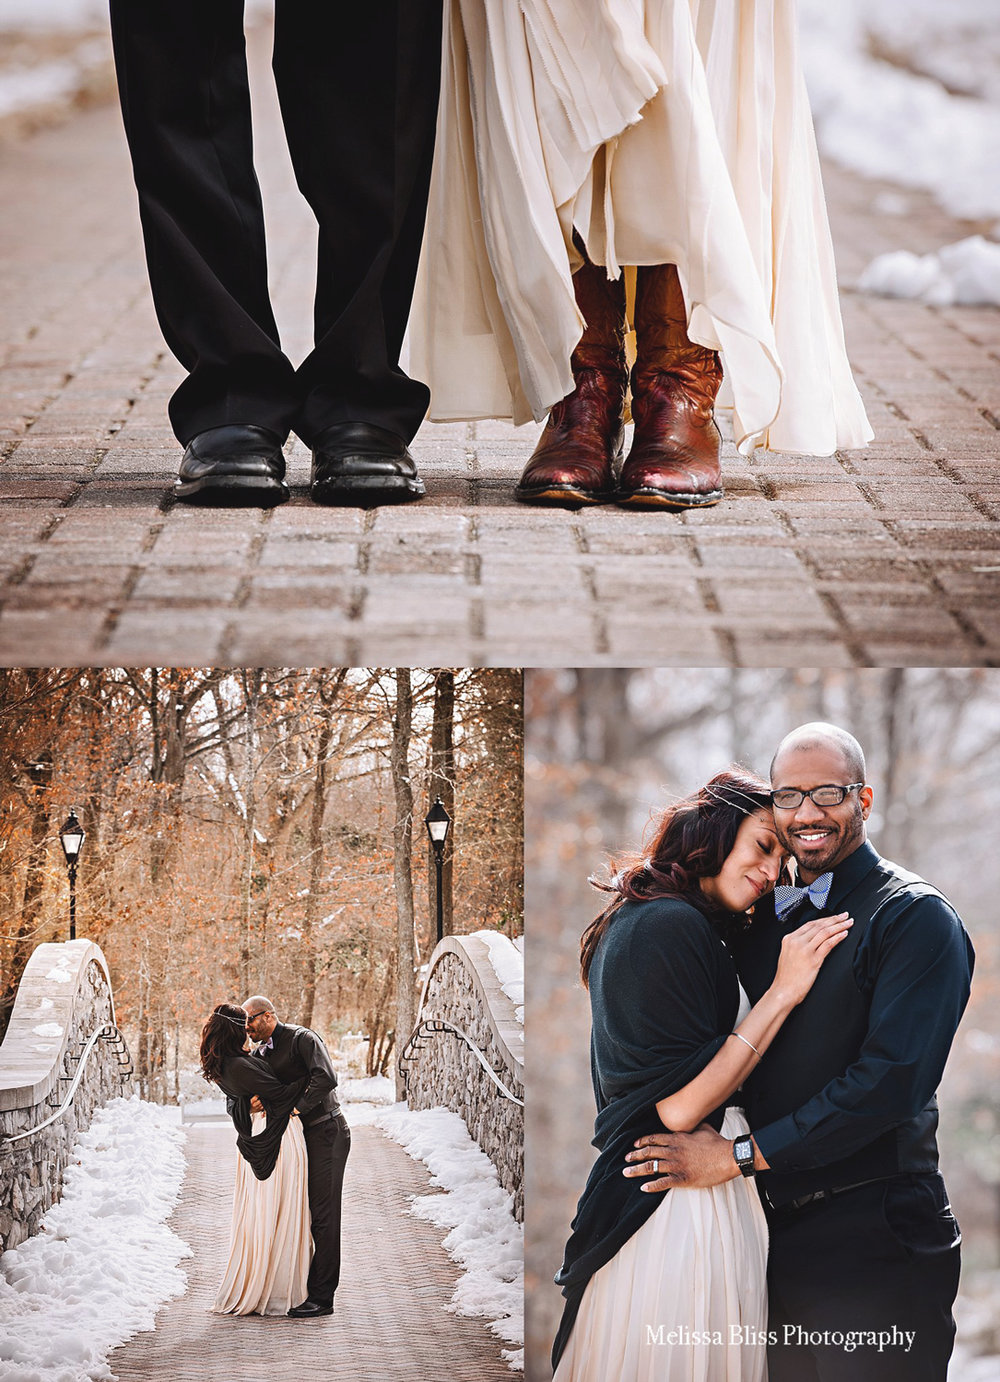 romantic-snowy-elopement-photos-winter-wedding-in-virginia-beach-photography-by-melissa-bliss-VA_wedding-photographers.jpg